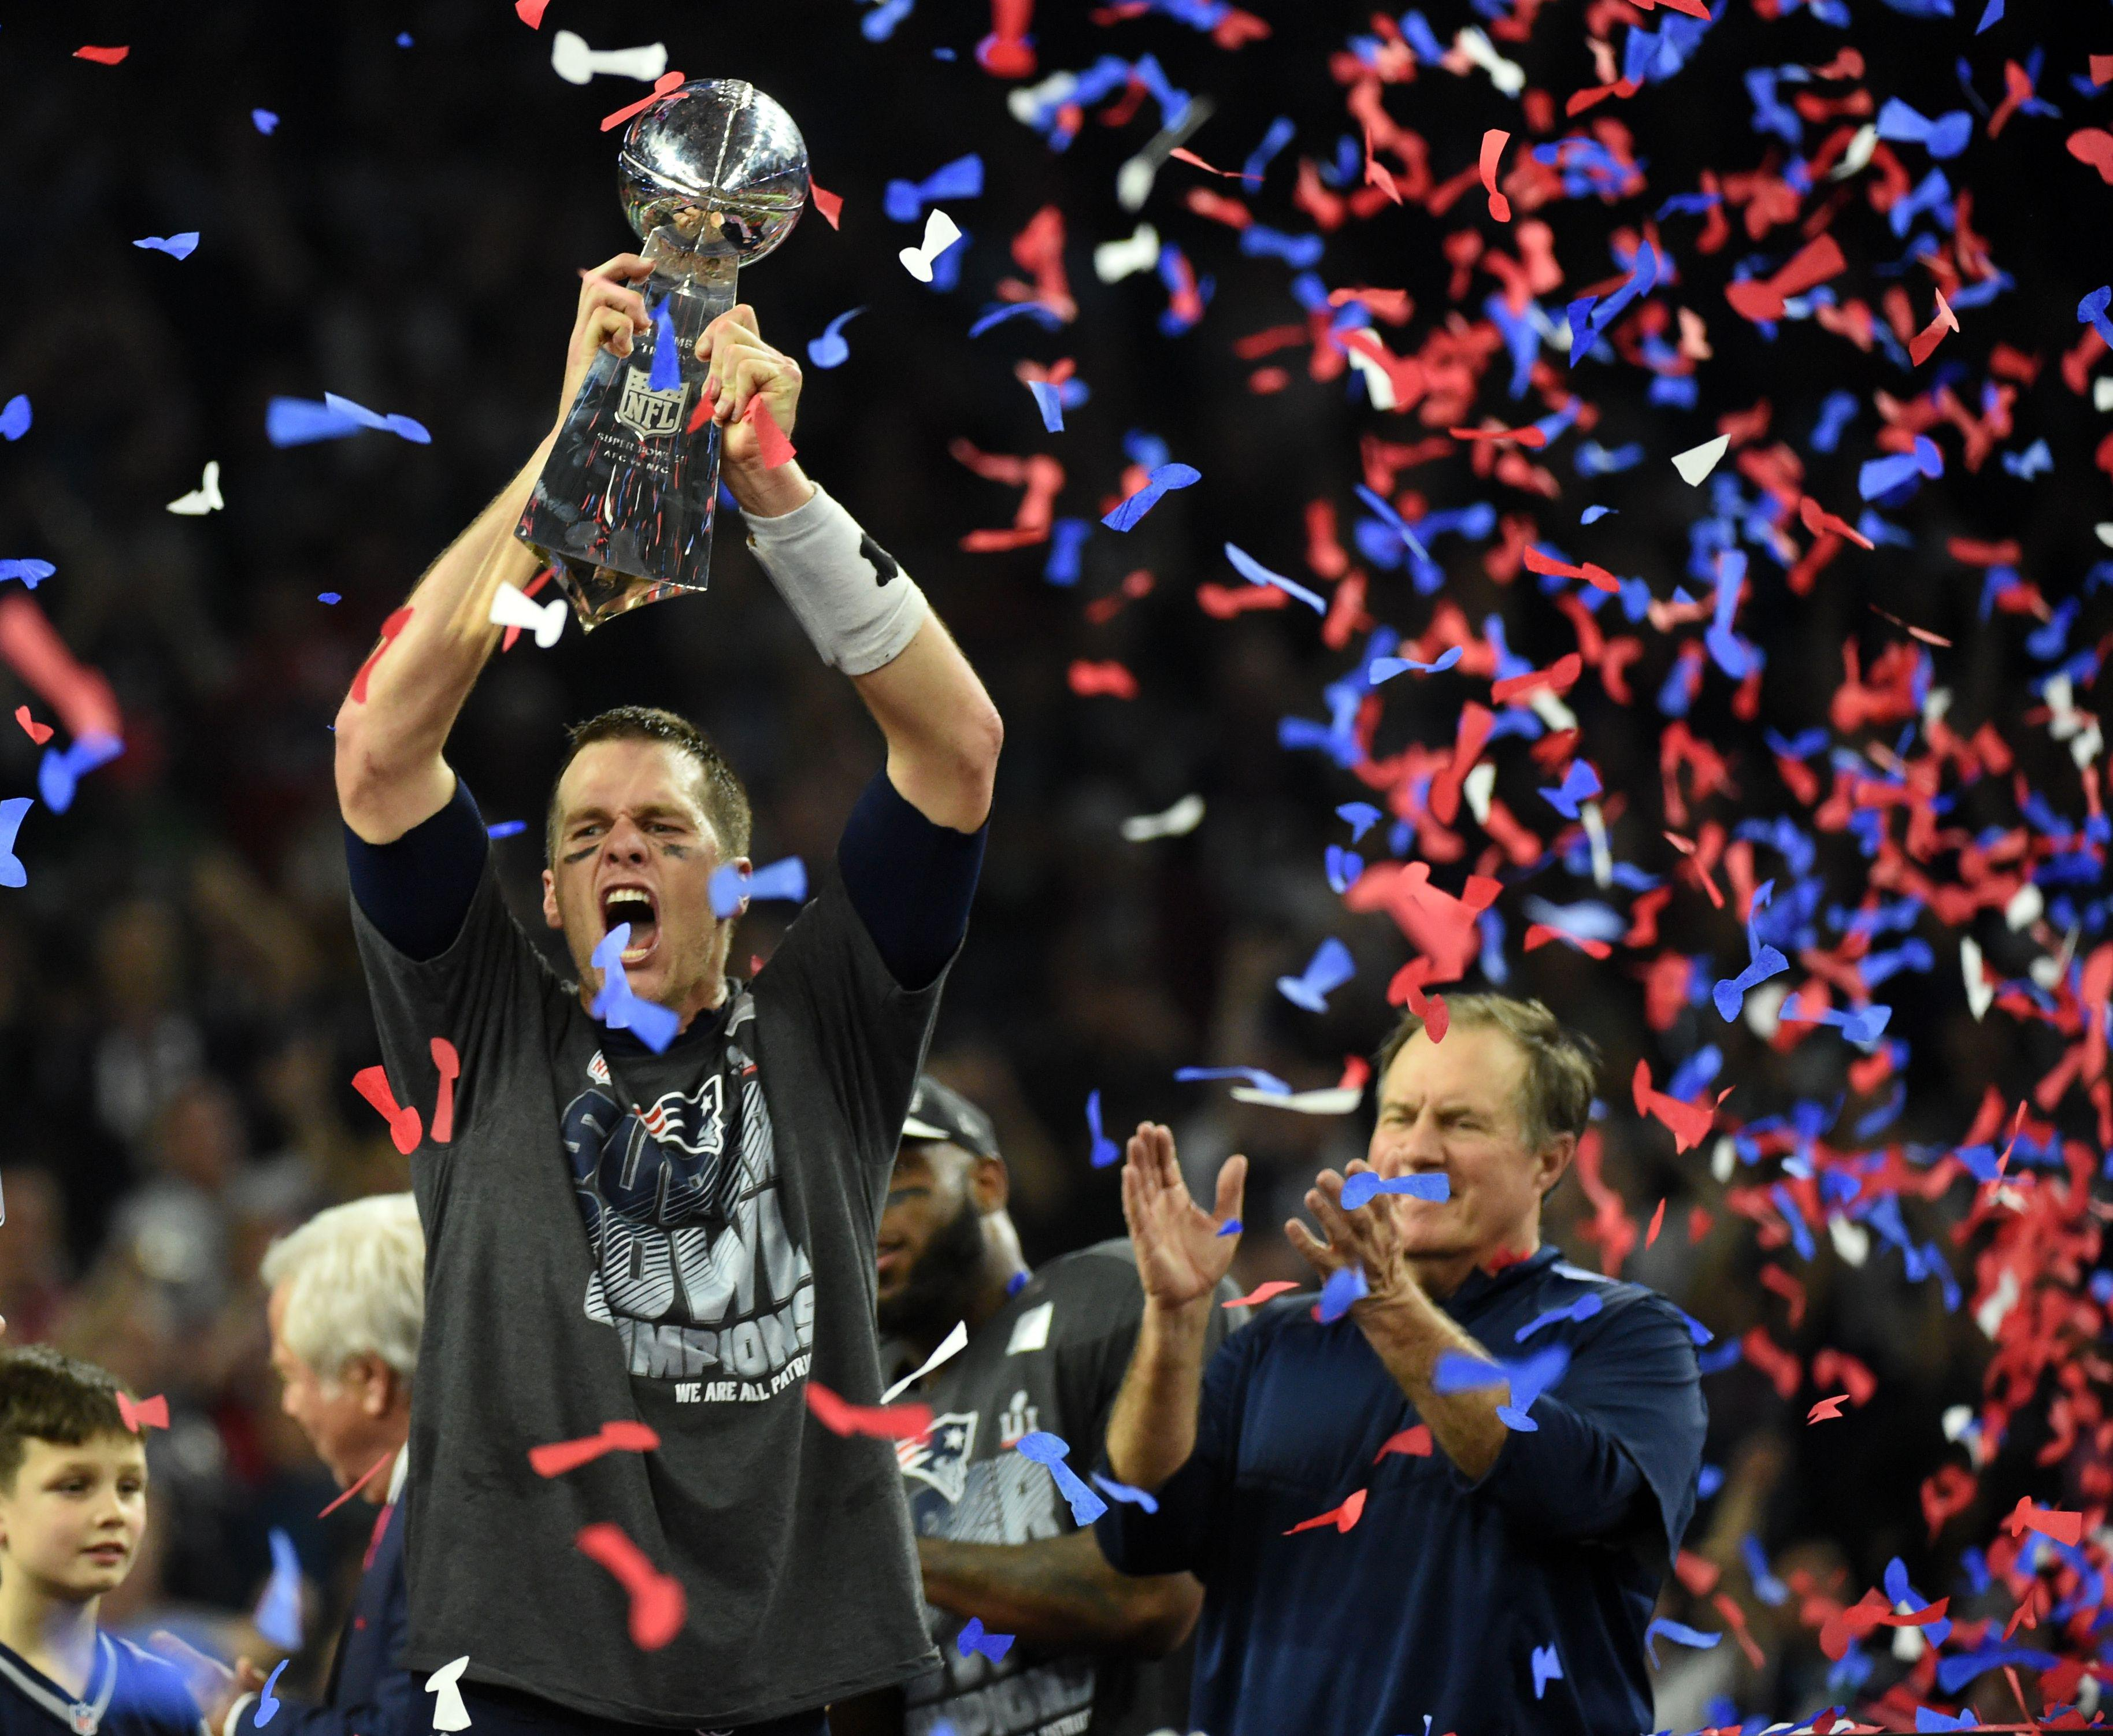 Tom Brady #12 of the New England Patriots holds the Vince Lombardi Trophy as Head coach Bill Belichick (R) looks on  after defeating the Atlanta Falcons 34-28 in overtime during Super Bowl 51 at NRG Stadium on February 5, 2017 in Houston, Texas.         The Patriots defeated the Falcons 34-28 after overtime.  / AFP / Timothy A. CLARY        (Photo credit should read TIMOTHY A. CLARY/AFP/Getty Images)